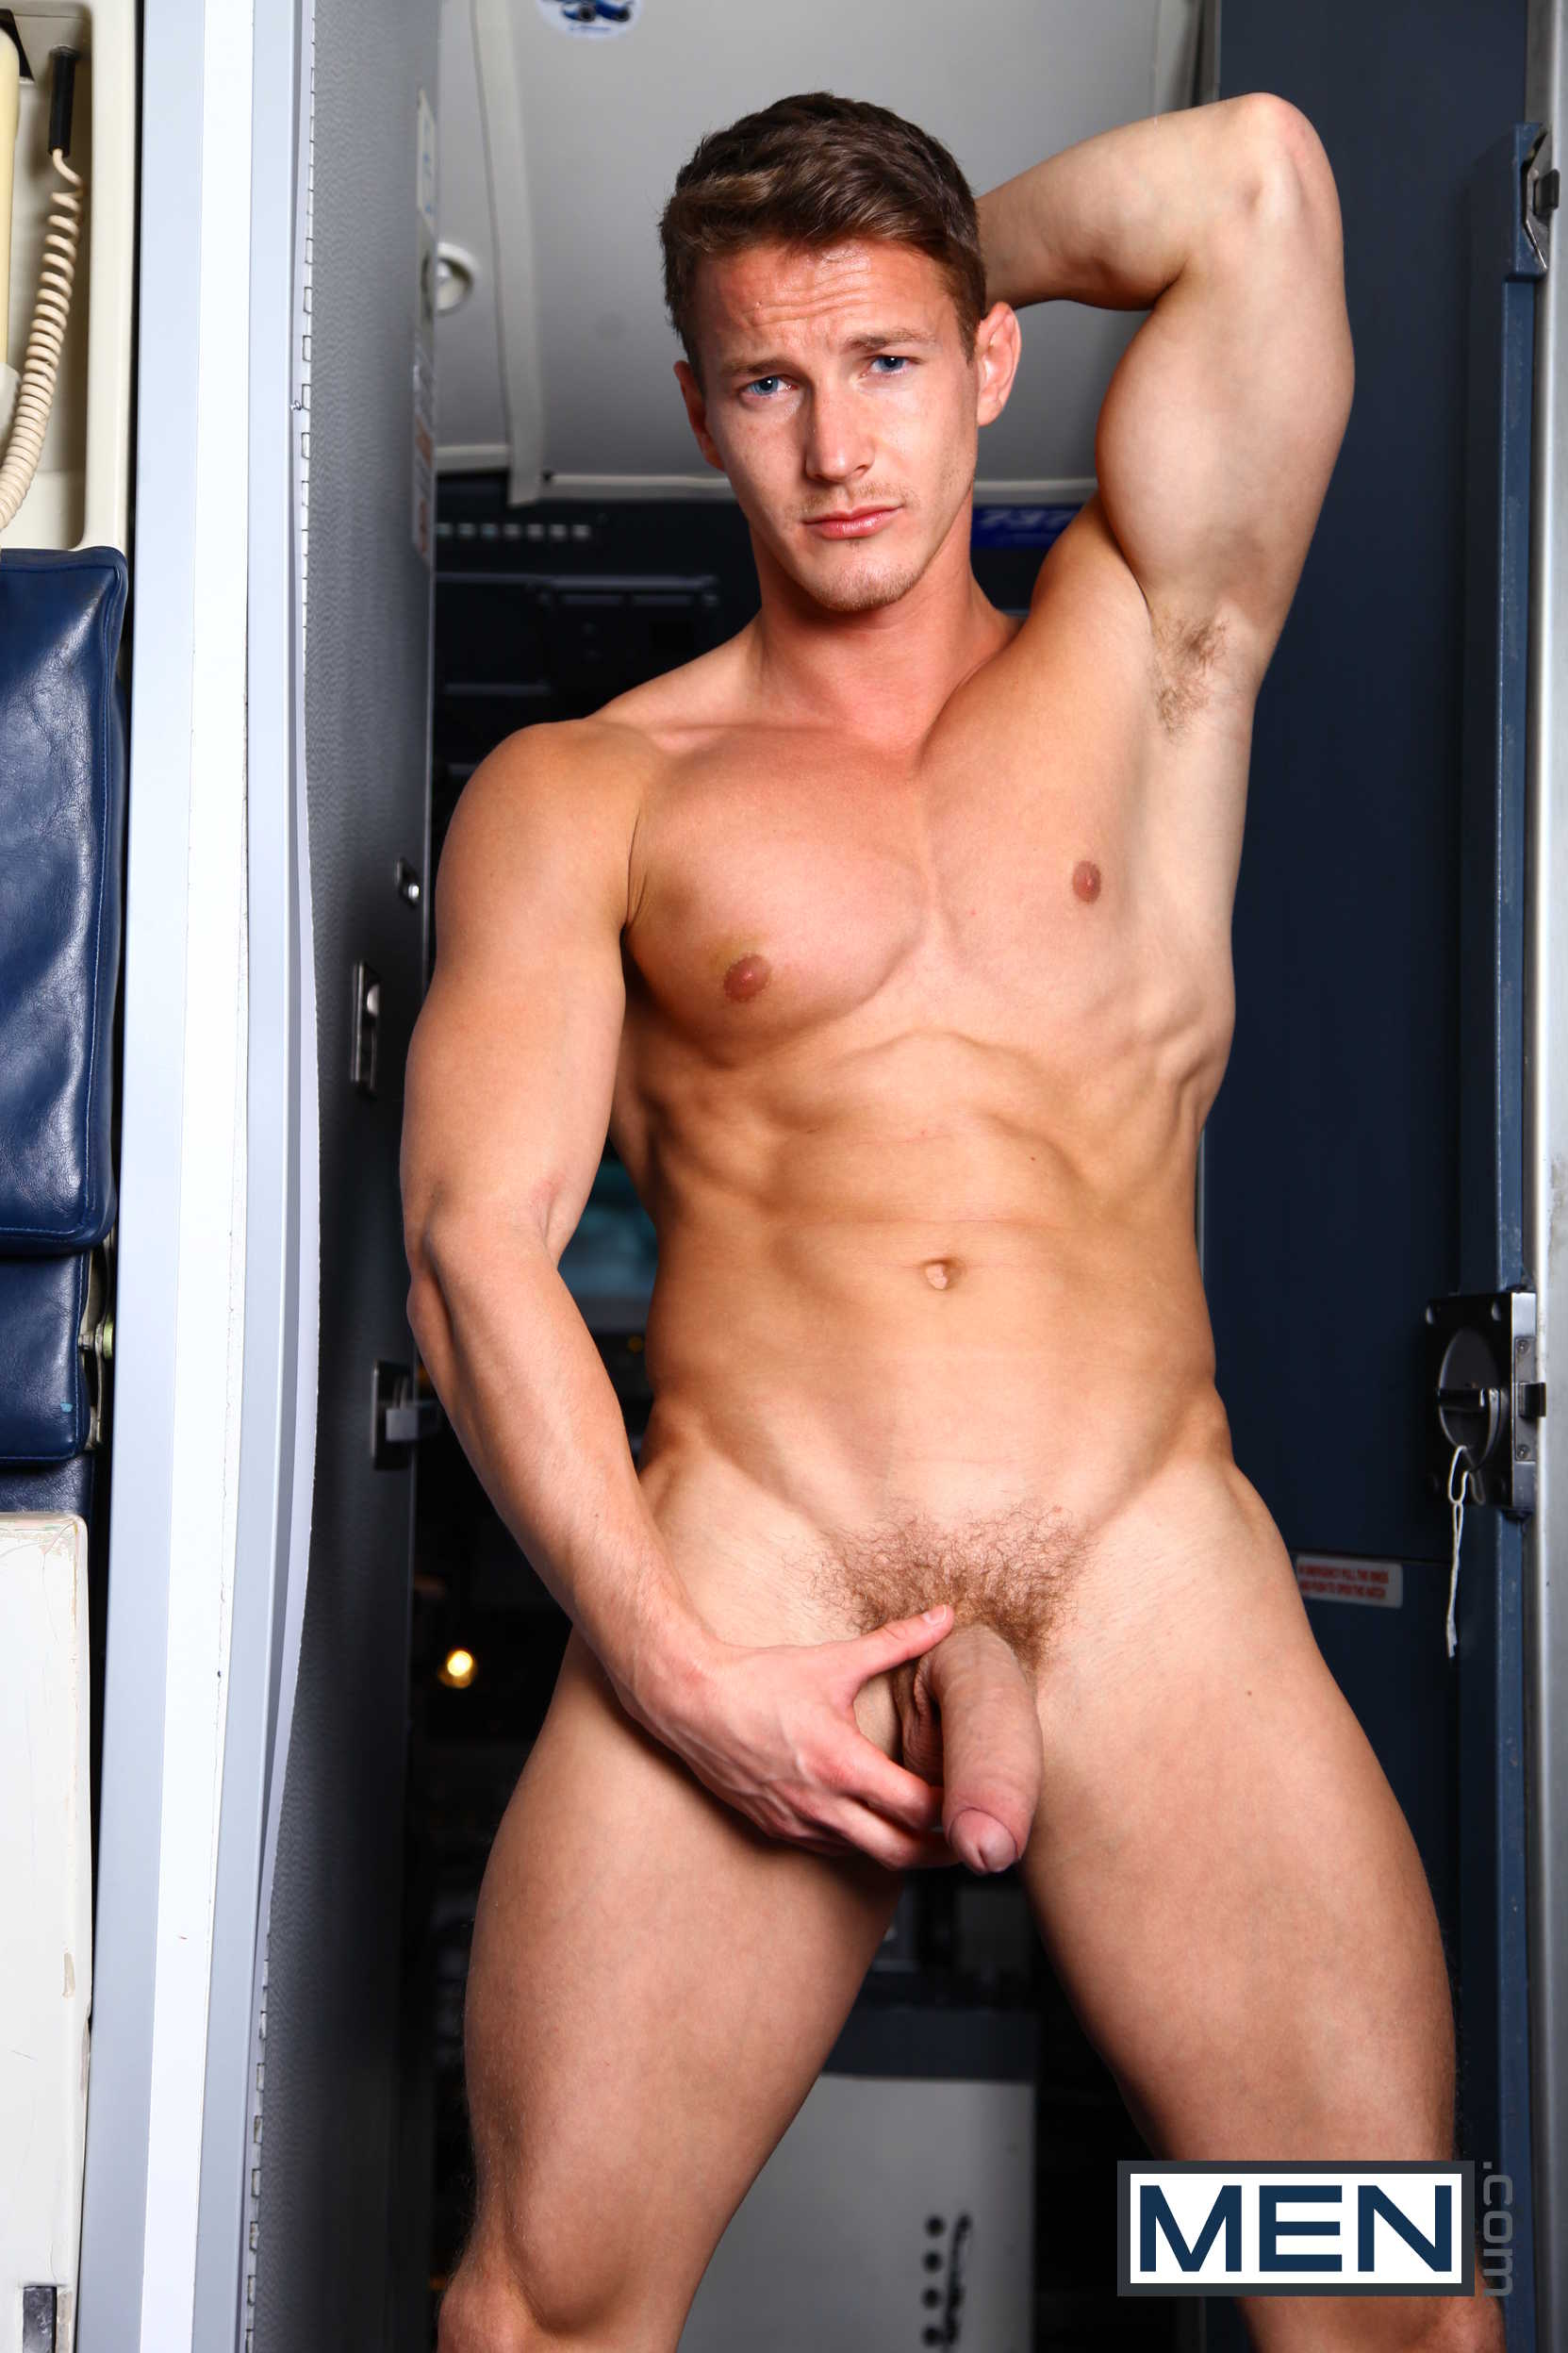 image Straight guys alone naked gay first time